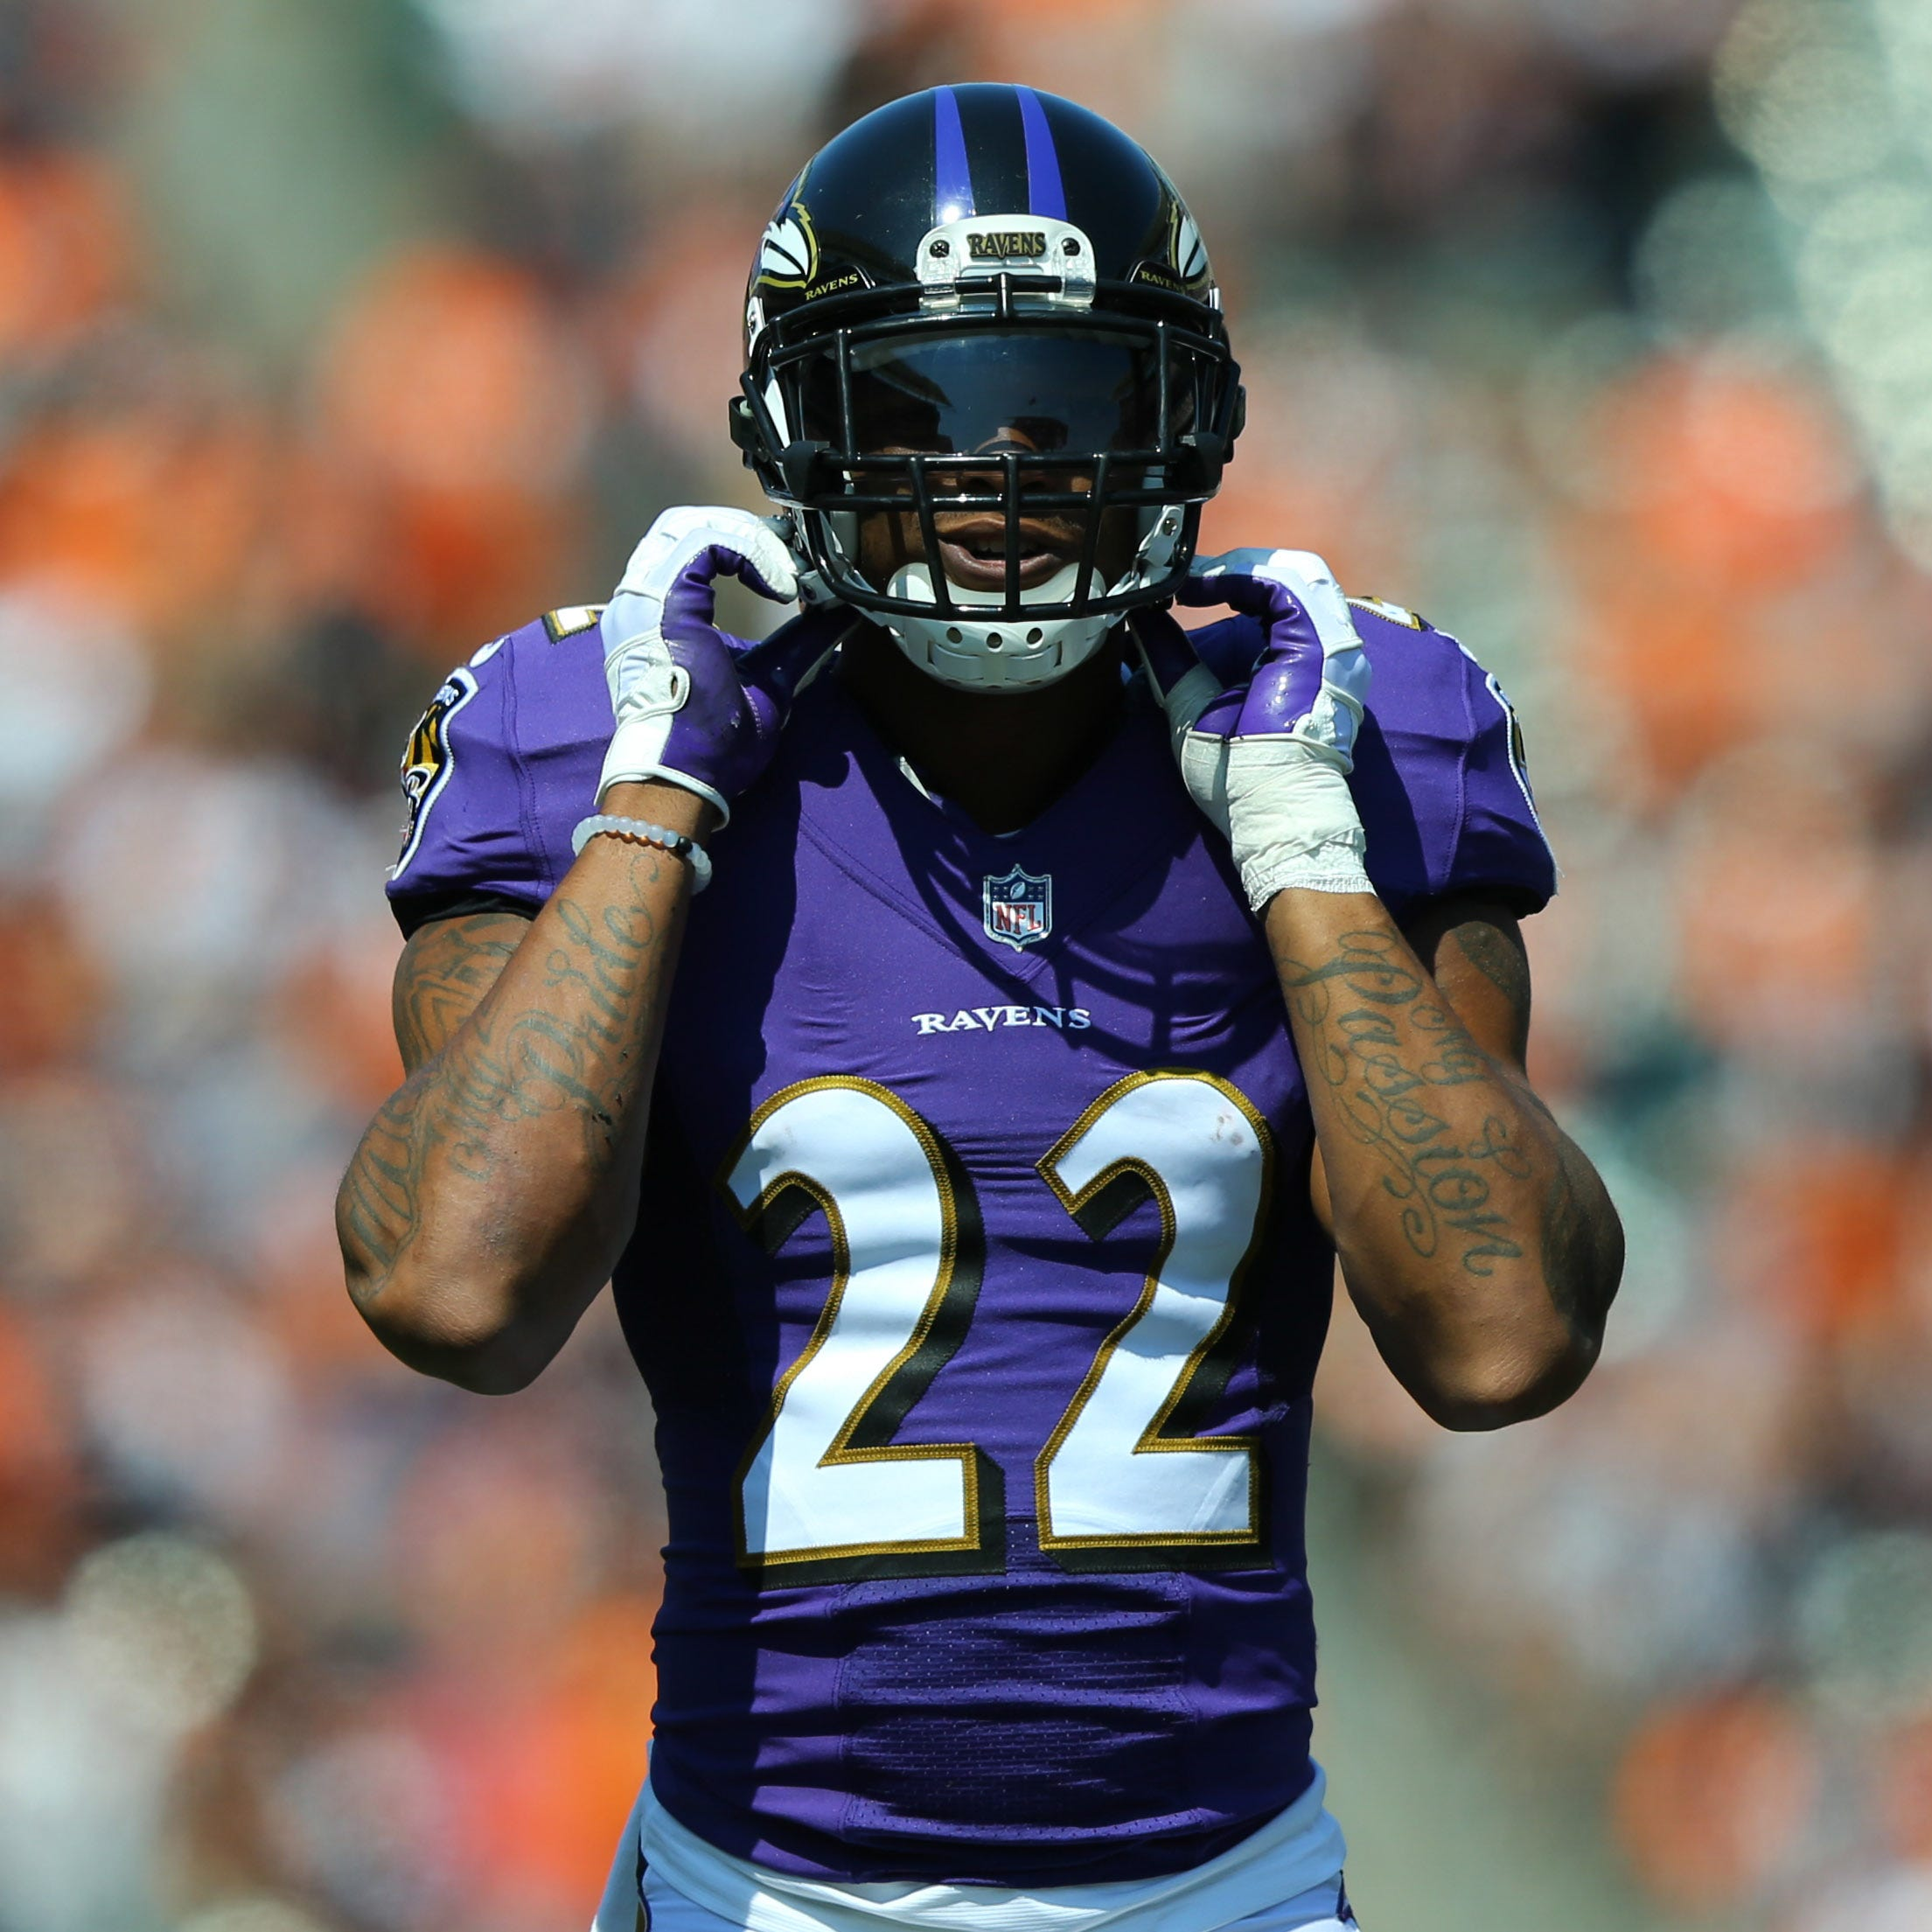 Baltimore Ravens CB Jimmy Smith suspended, to miss NFL Week 2 game at Cincinnati Bengals